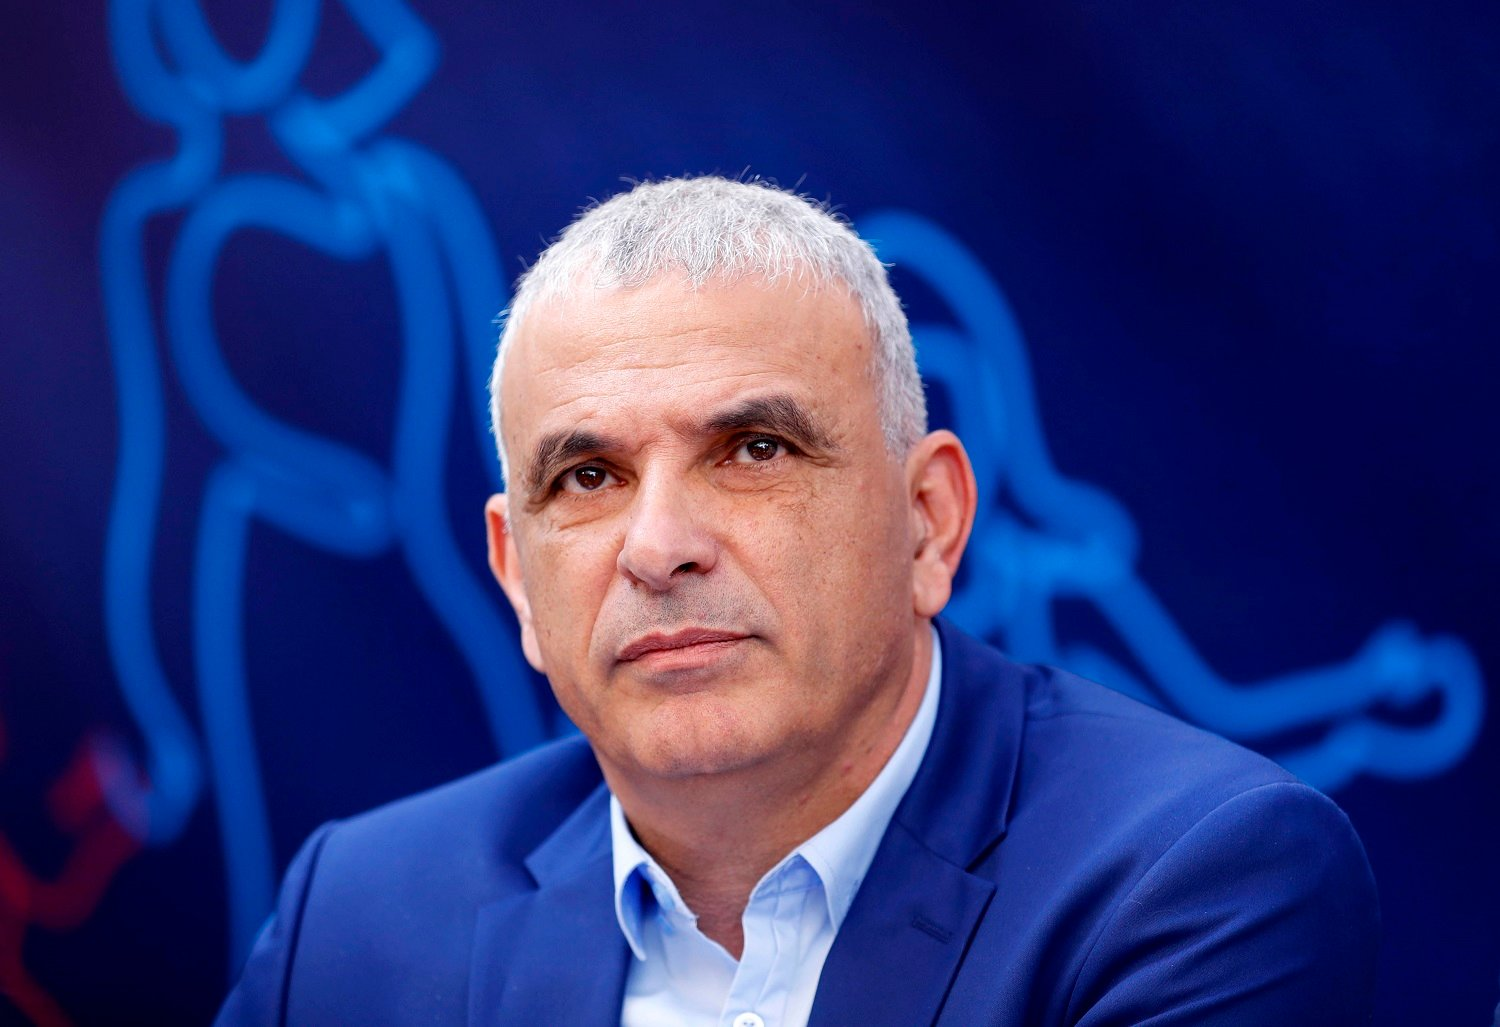 Moshe Kahlon gives a press conference in Tel Aviv in February 2019 (AFP)